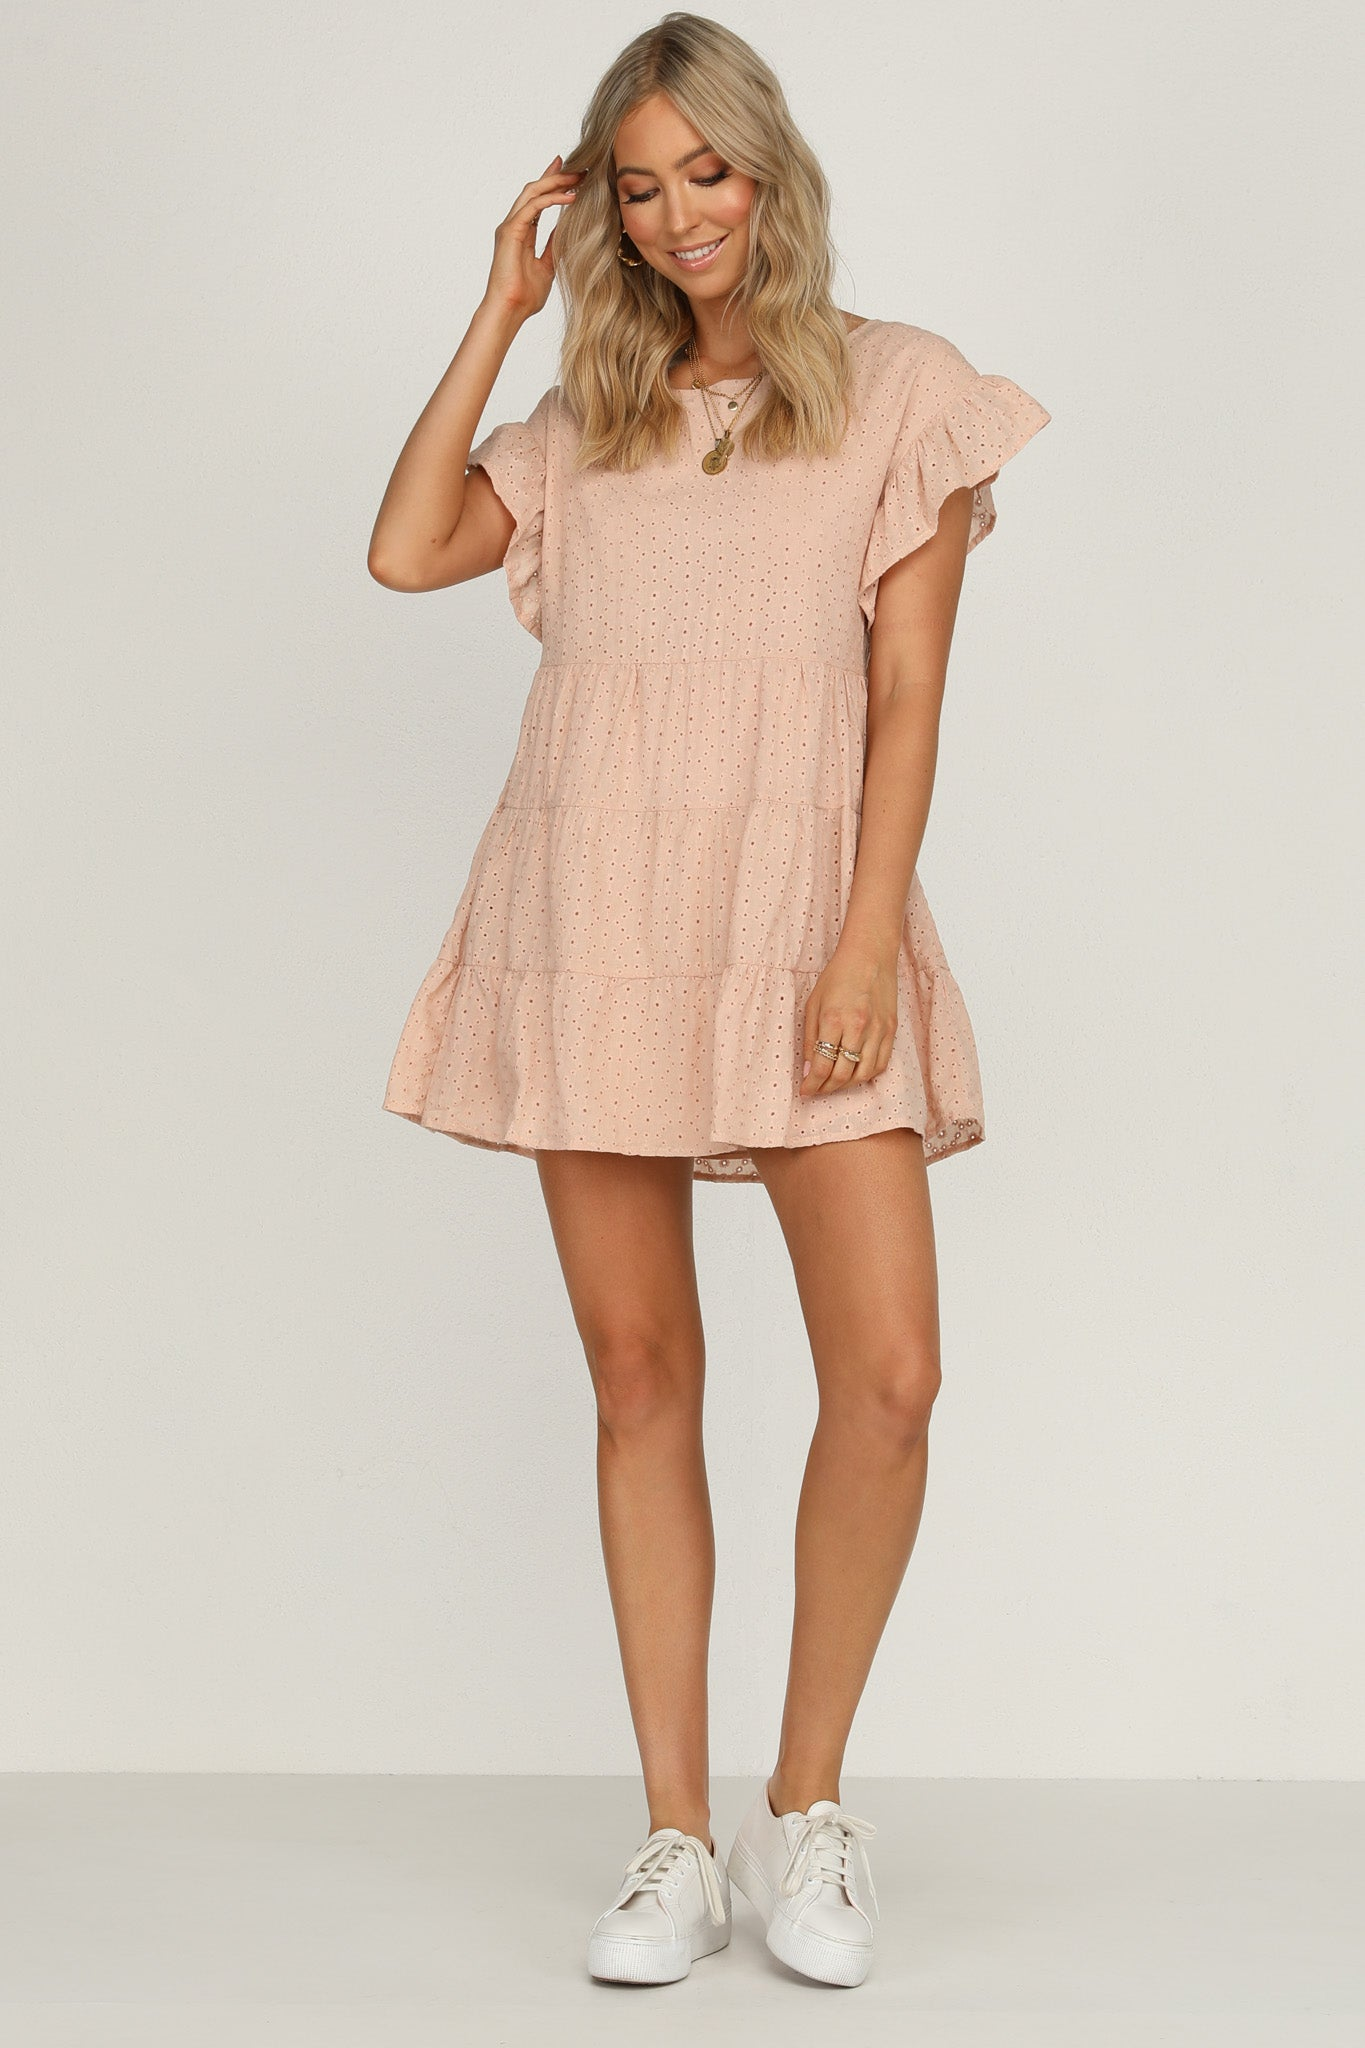 halcyon heart dress pink relaxed fit